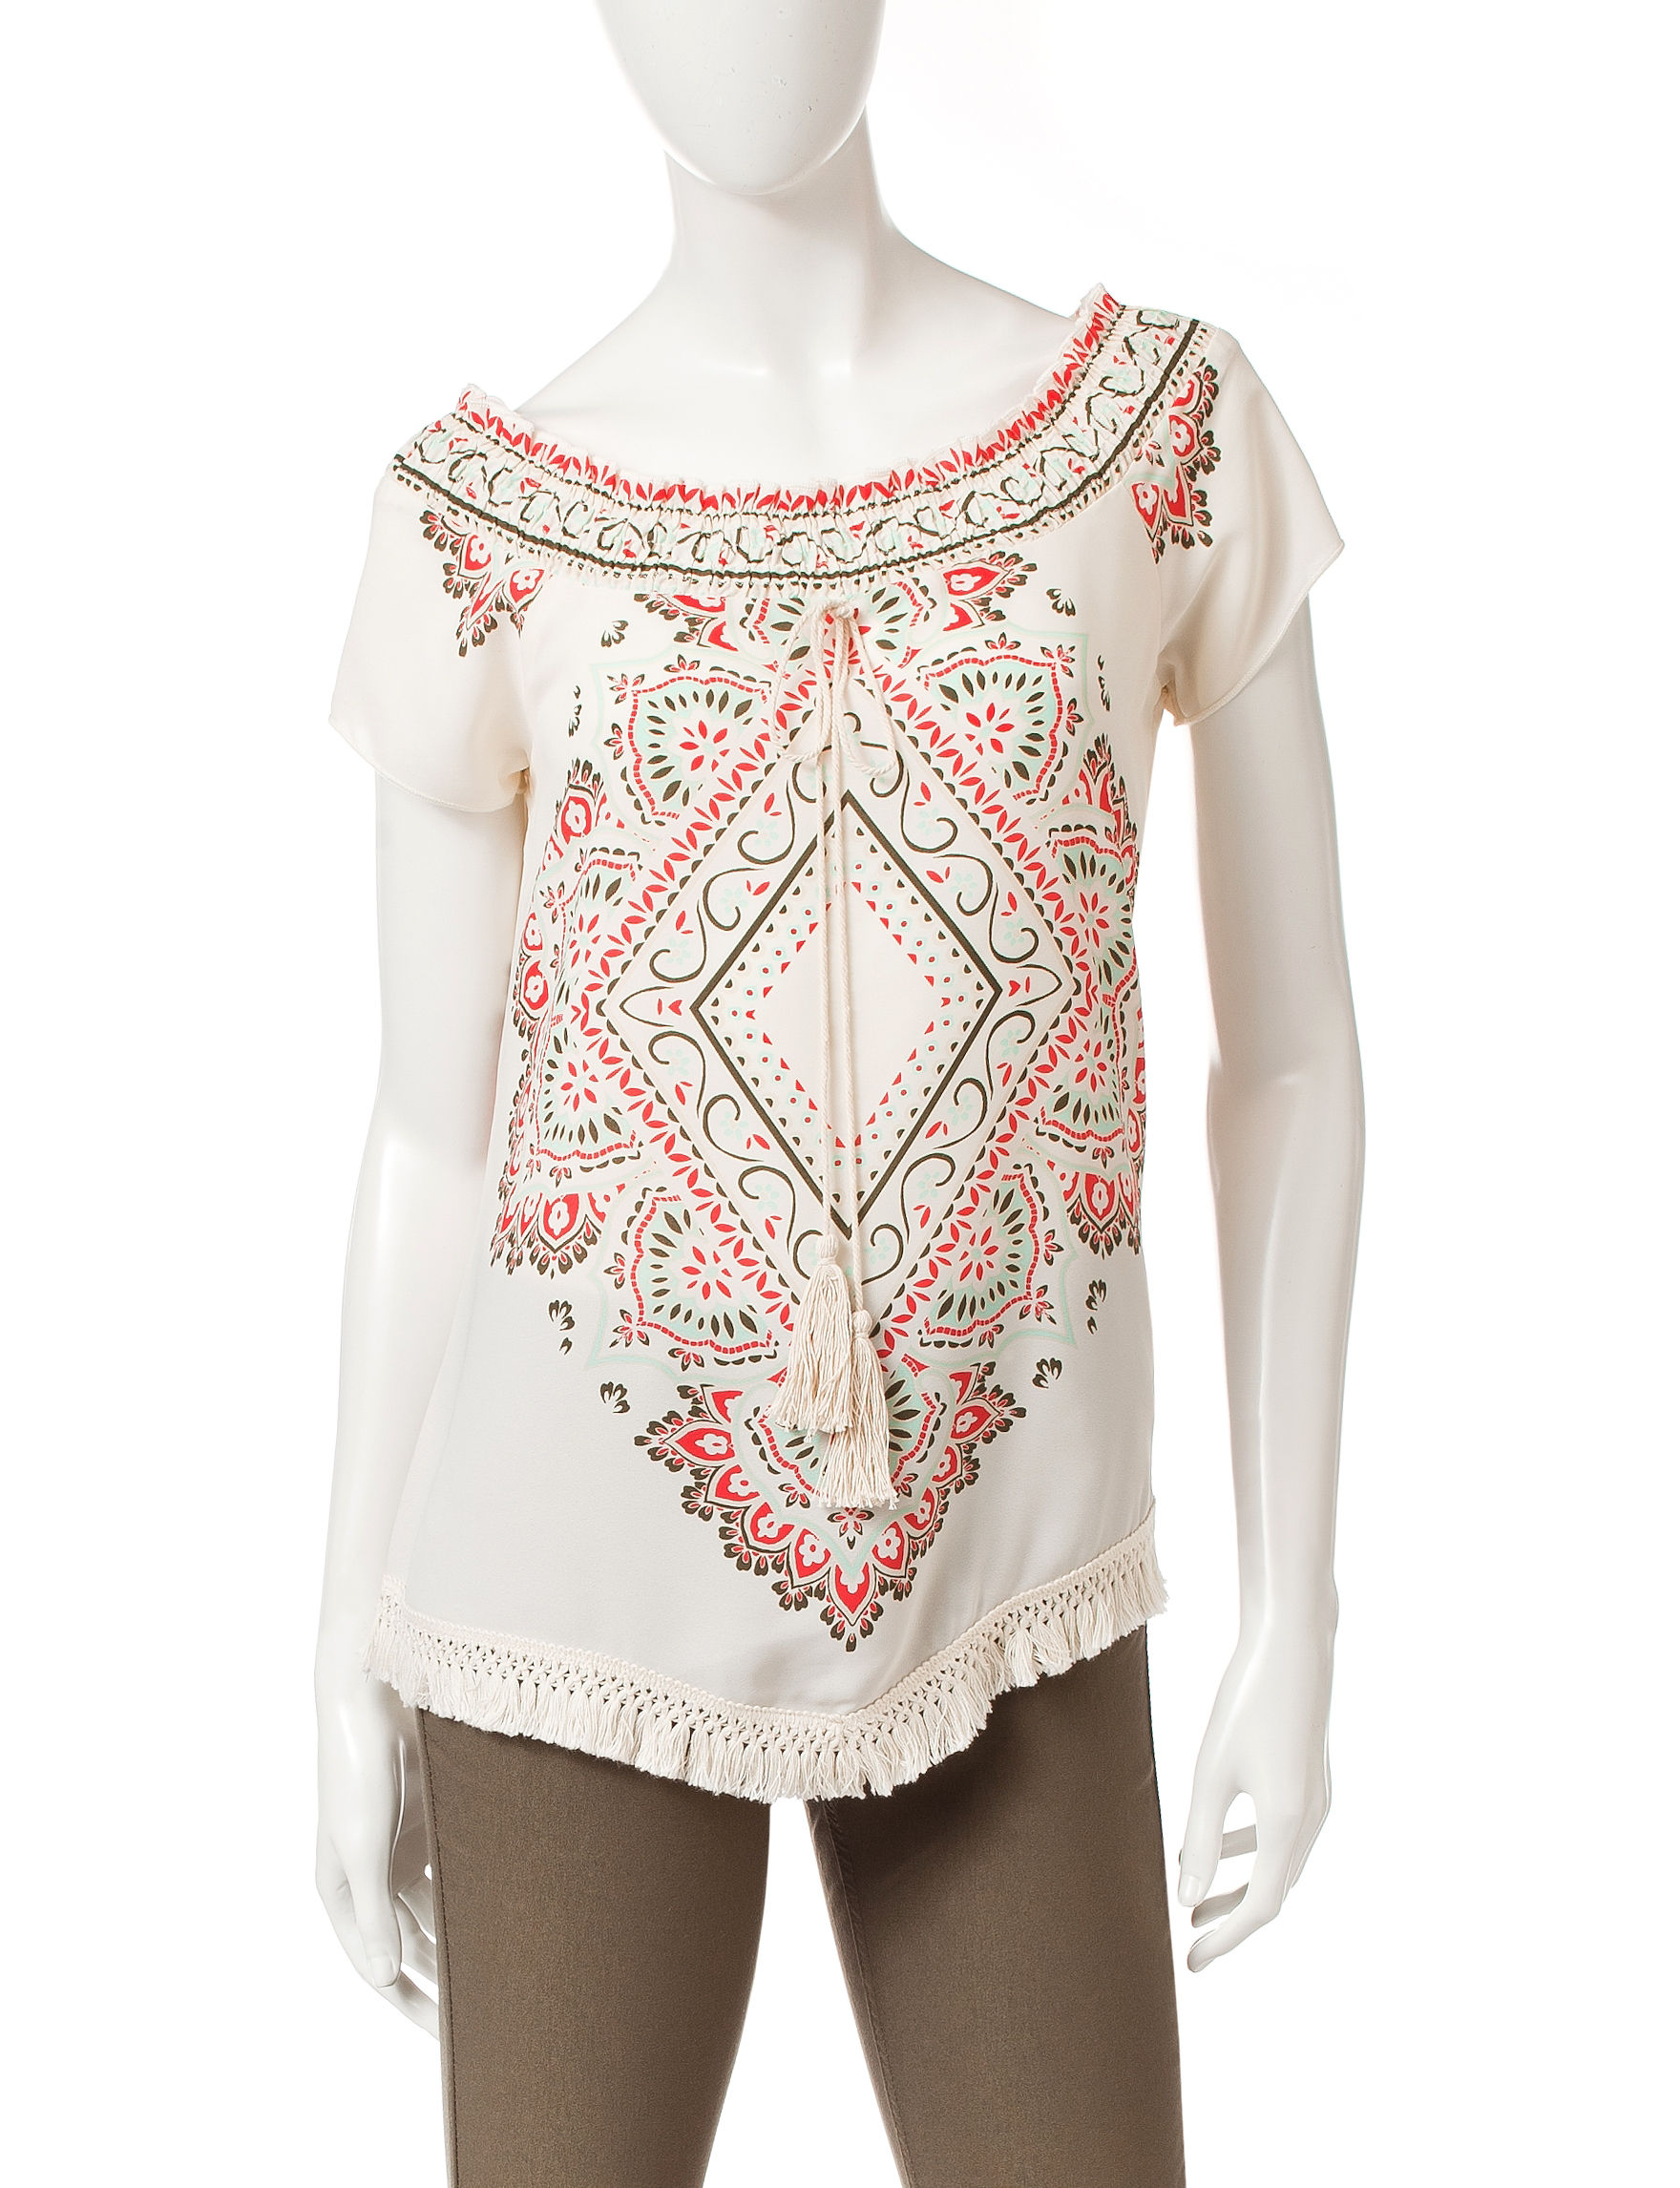 Heart Soul White / Multi Shirts & Blouses